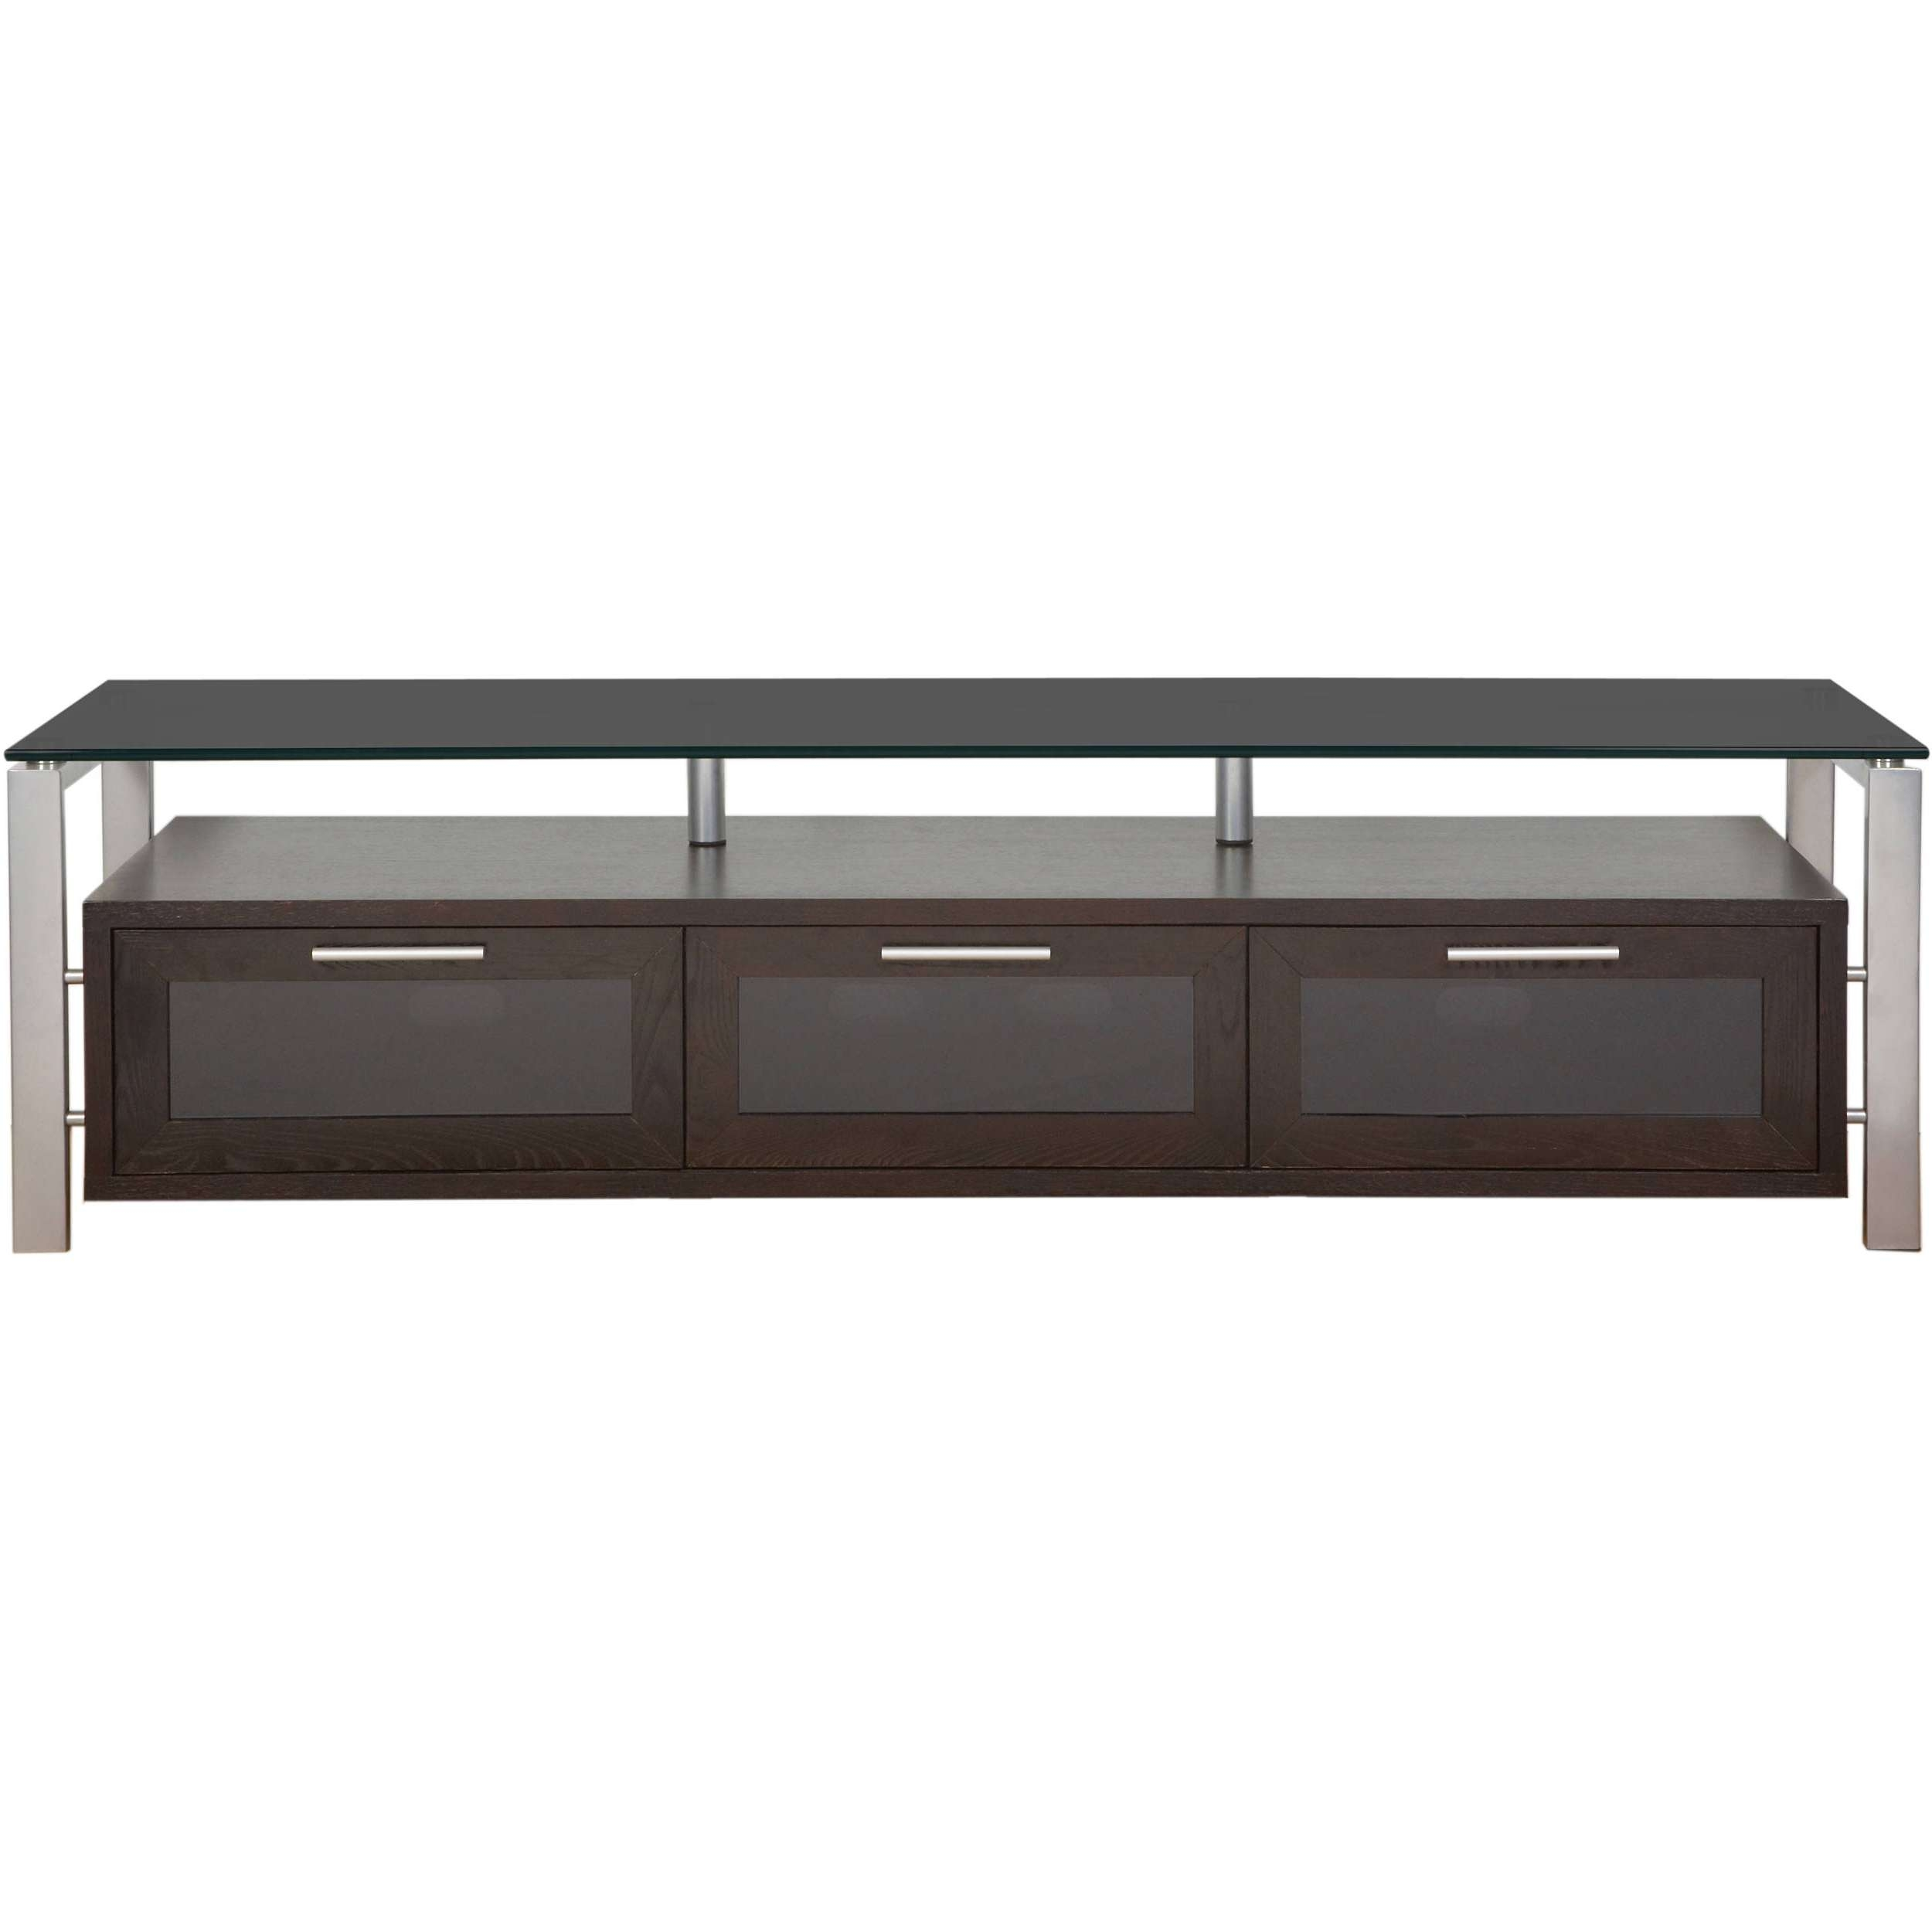 Plateau Decor 71 Tv Stand Decor 71 (E) S Bg B&h Photo Video Pertaining To Glass Tv Cabinets (View 15 of 20)